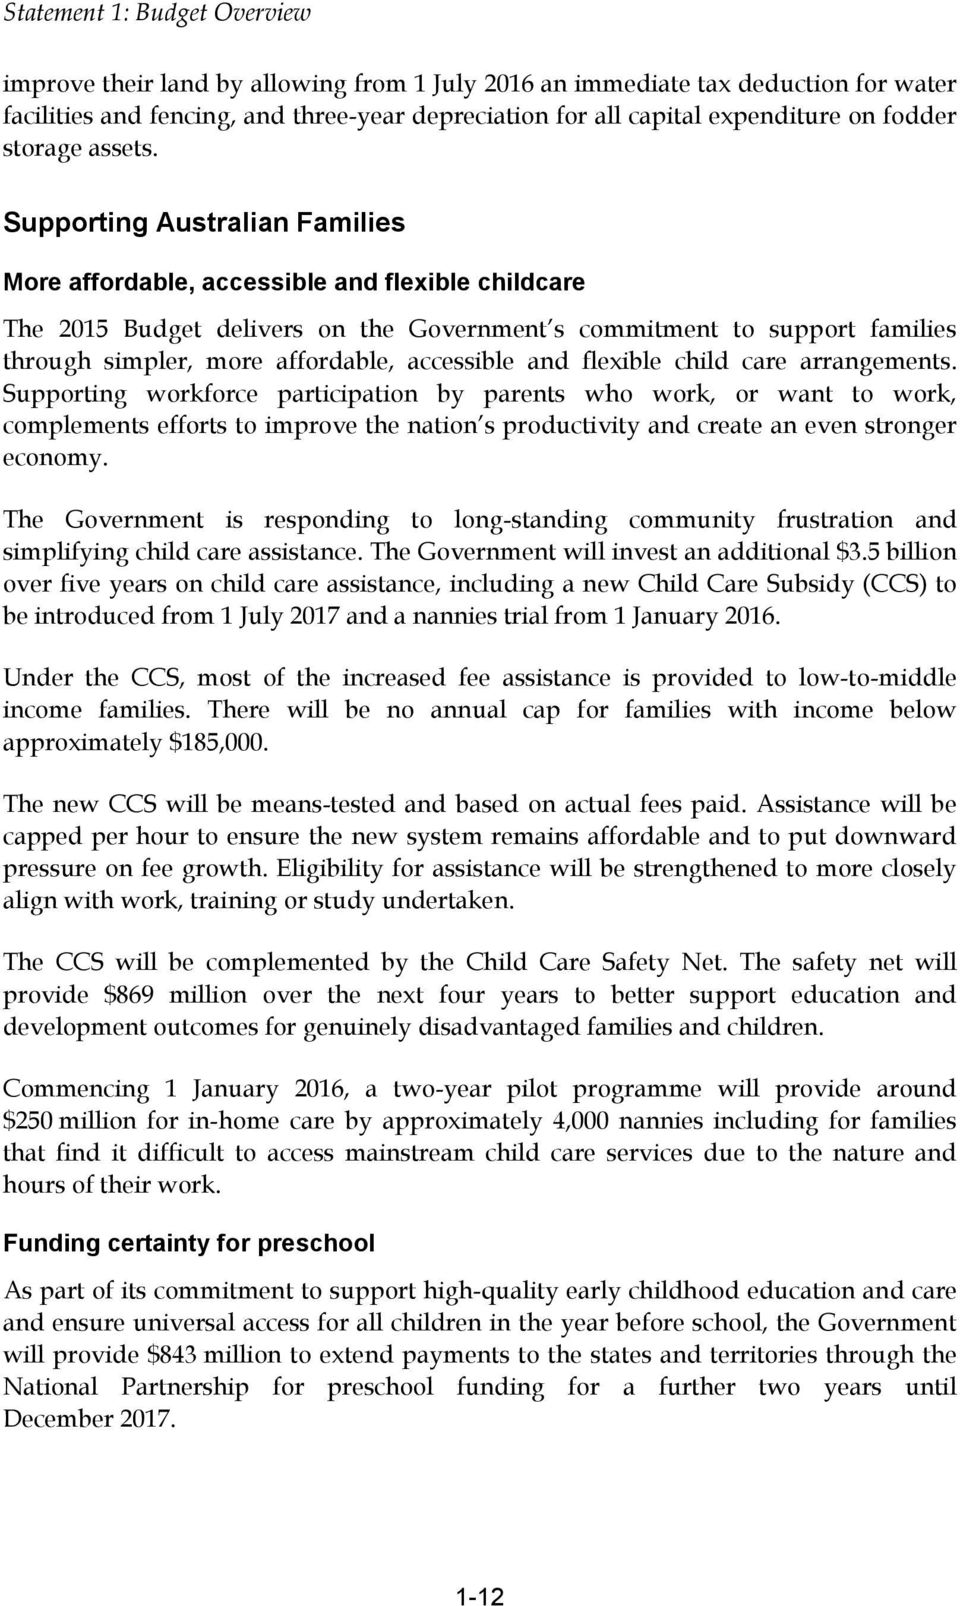 Supporting Australian Families More affordable, accessible and flexible childcare The 2015 Budget delivers on the Government s commitment to support families through simpler, more affordable,